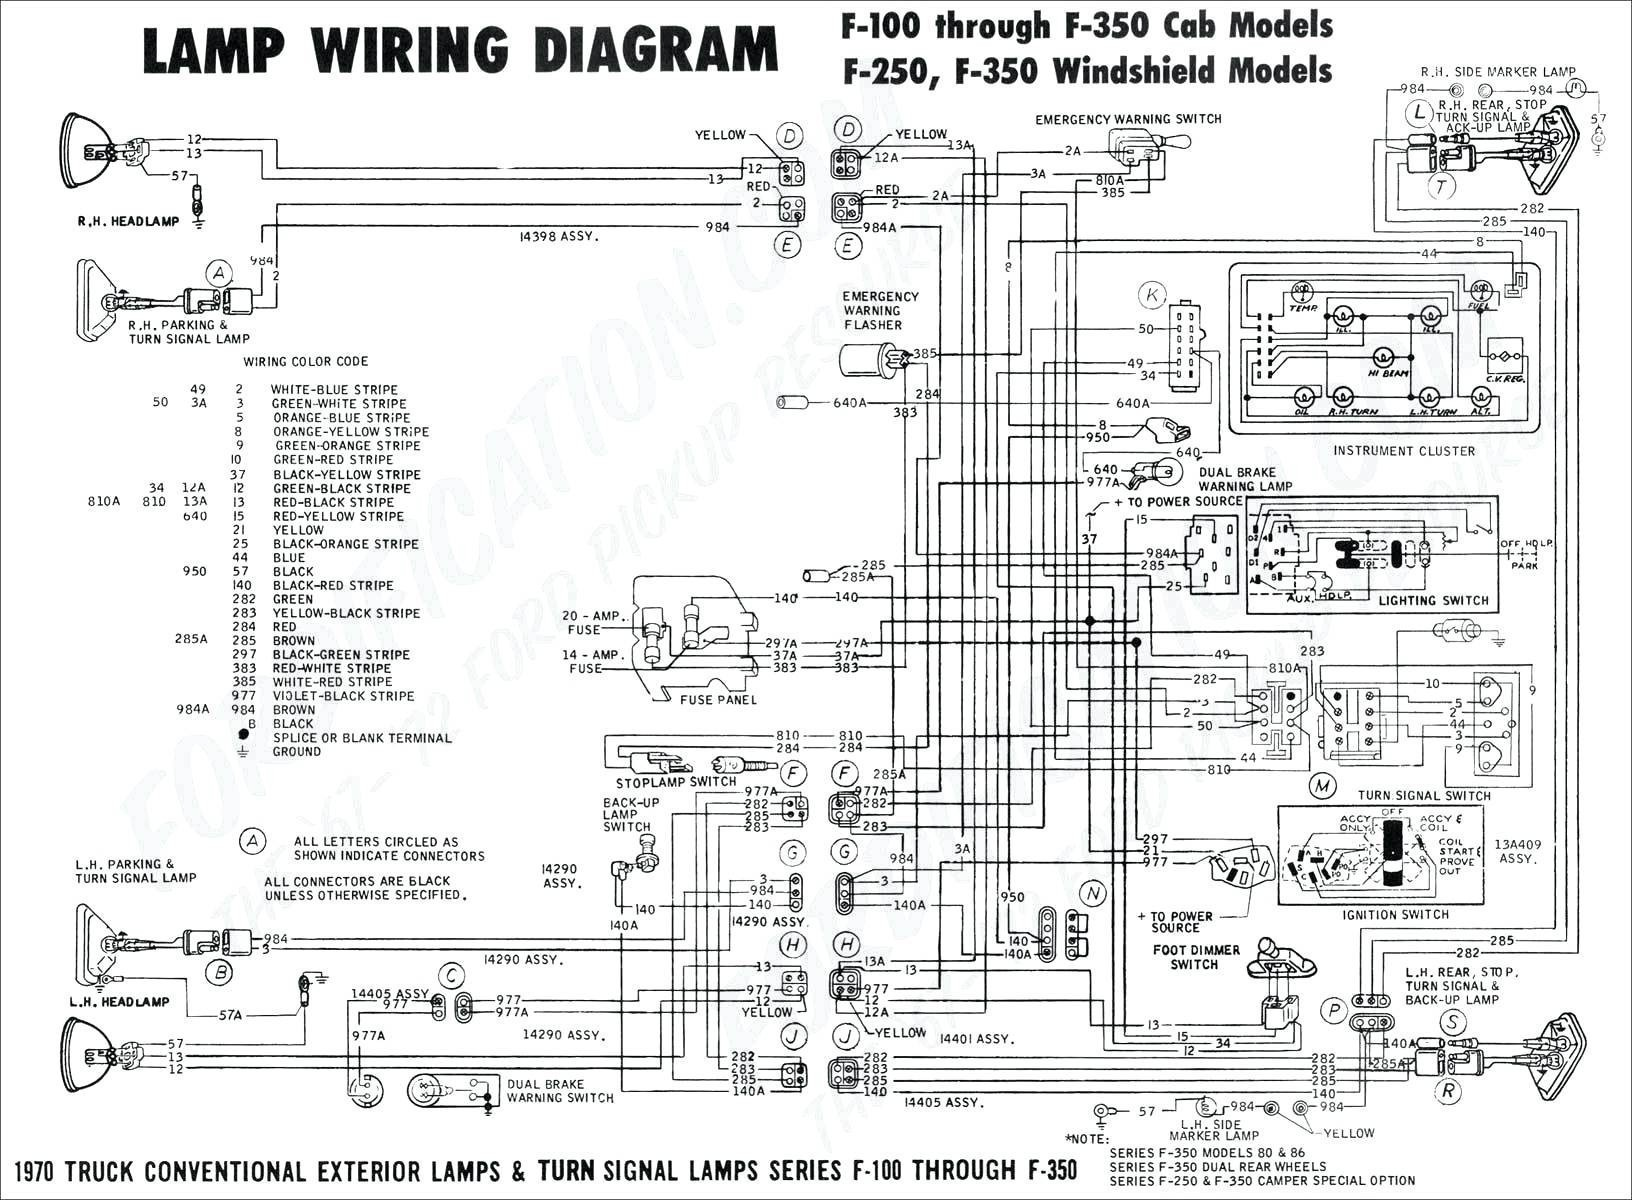 2002 ford Focus Wiring Diagram 46eb13 Wiring Diagram for A 2007 ford Focus Ses